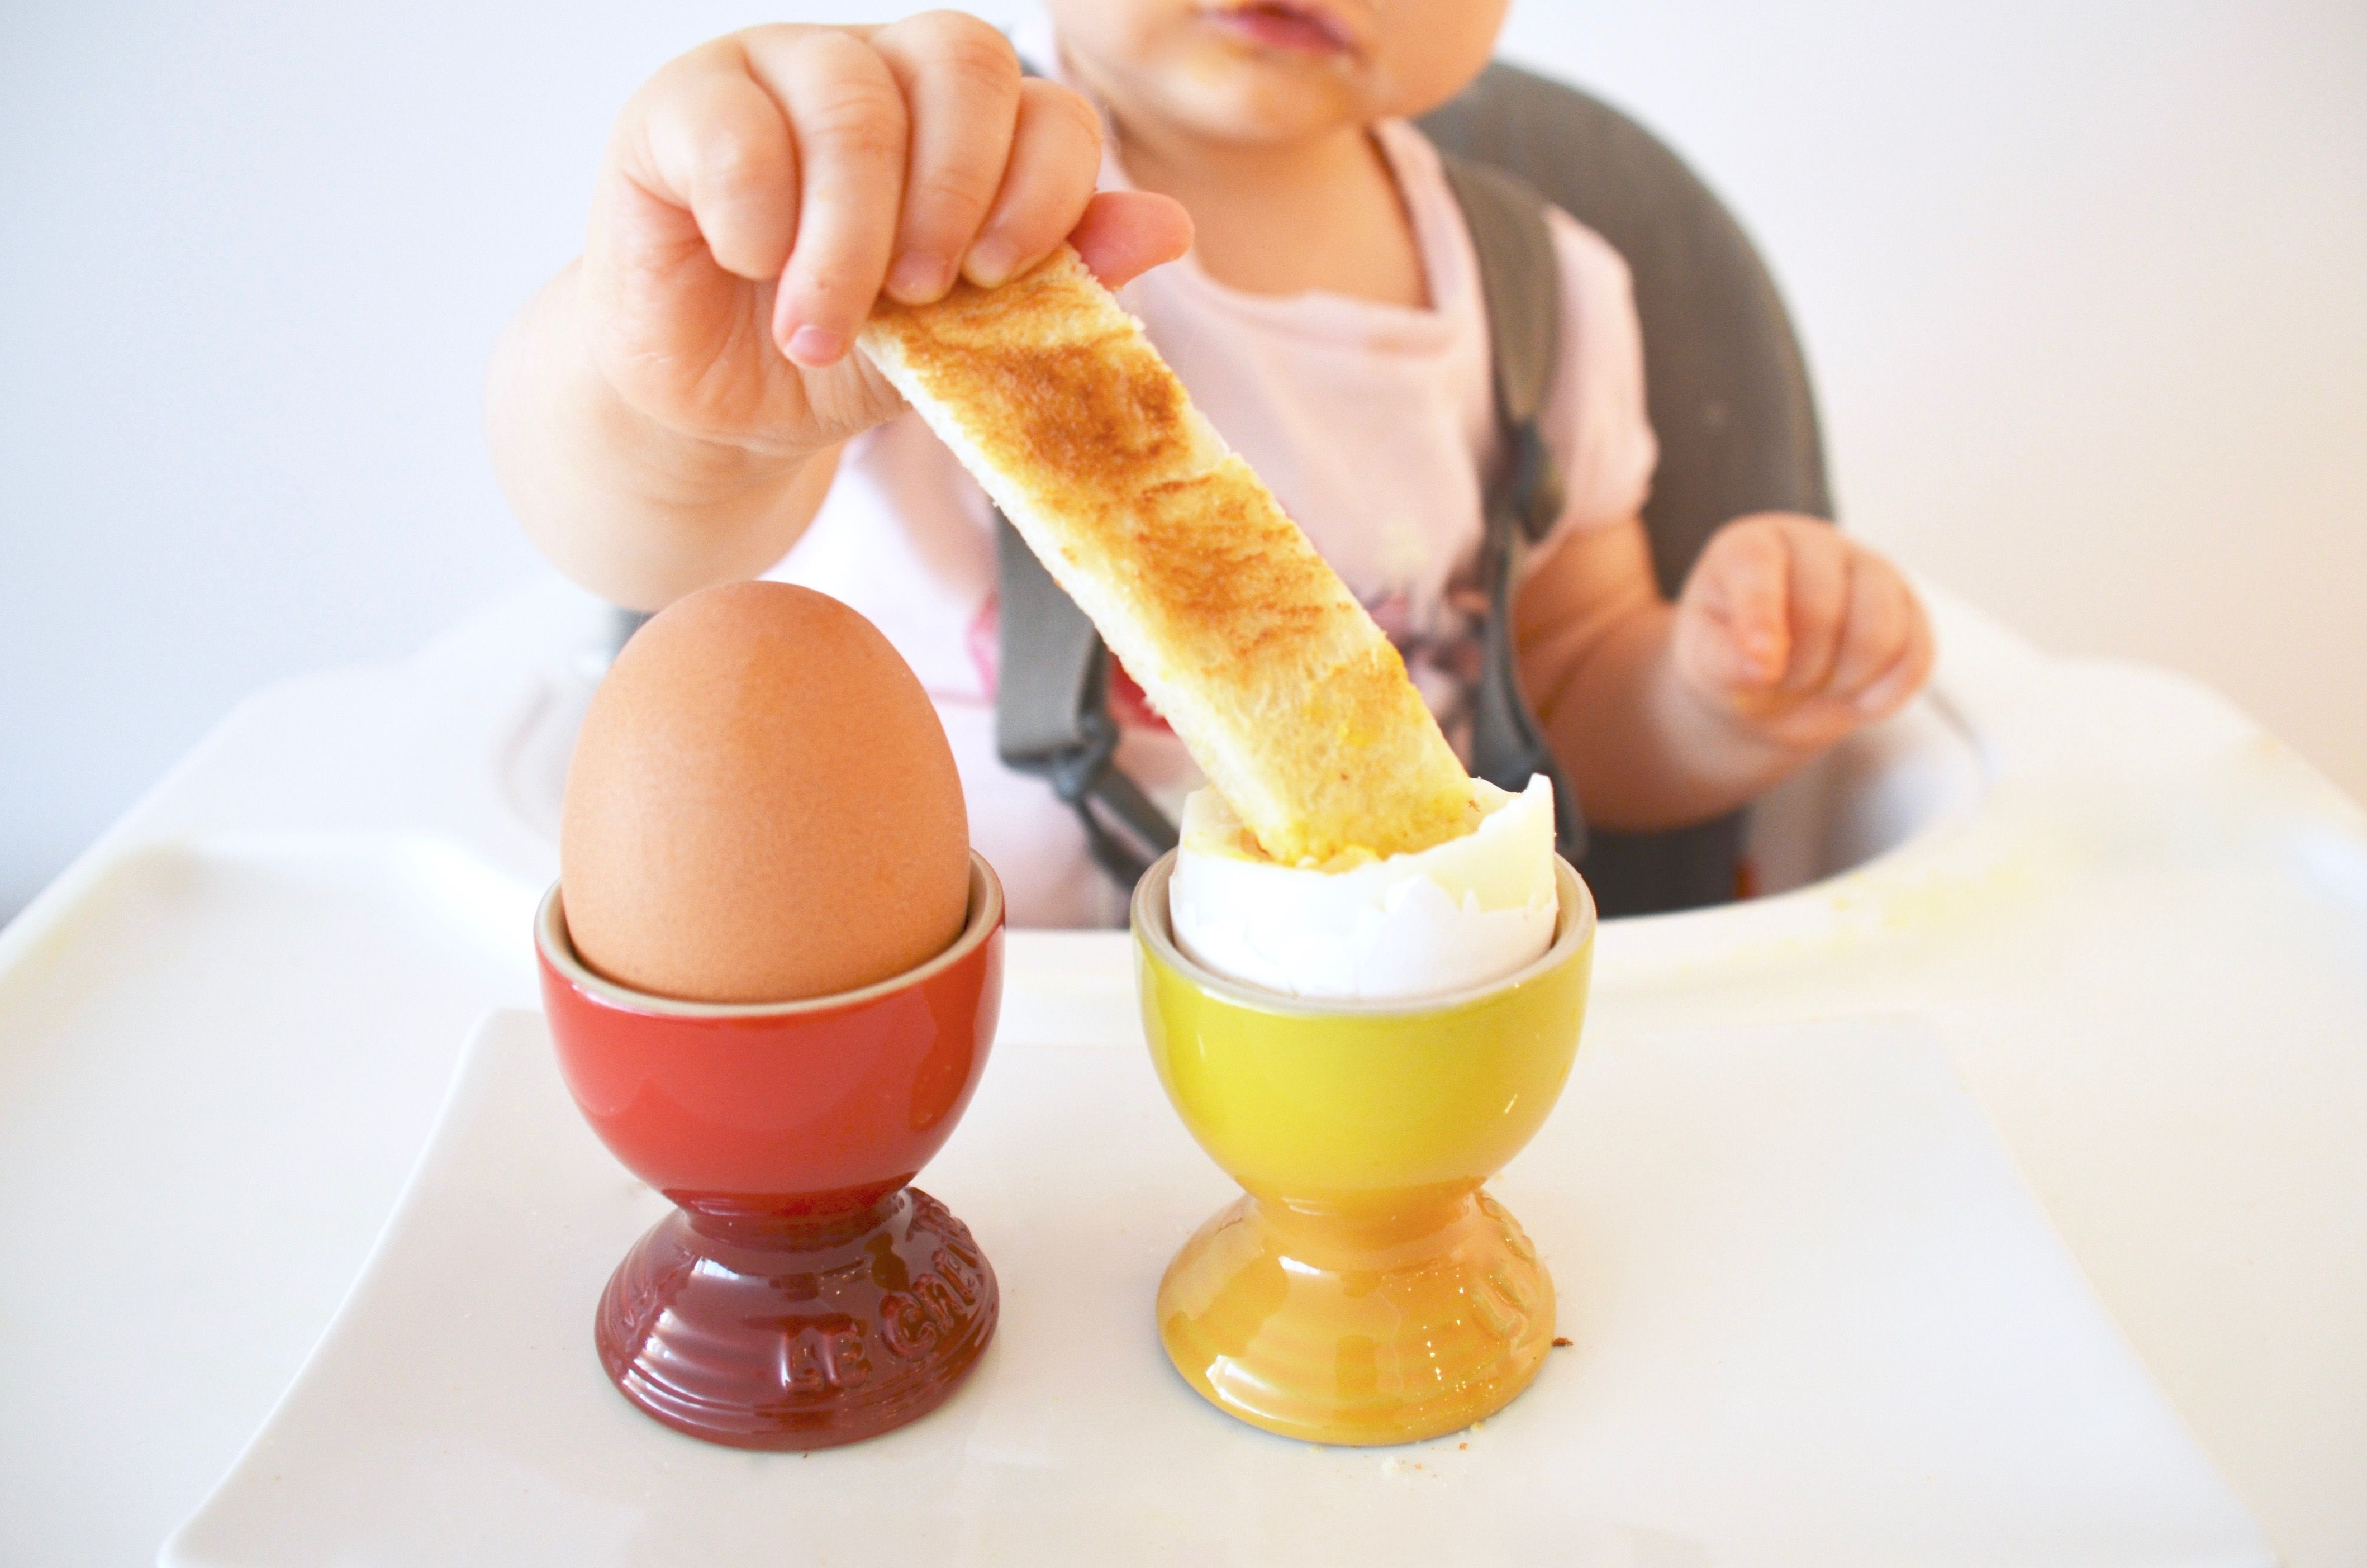 Soft boiled egg cups baby food recipe baby food pinterest soft boiled egg cups baby food recipe forumfinder Gallery